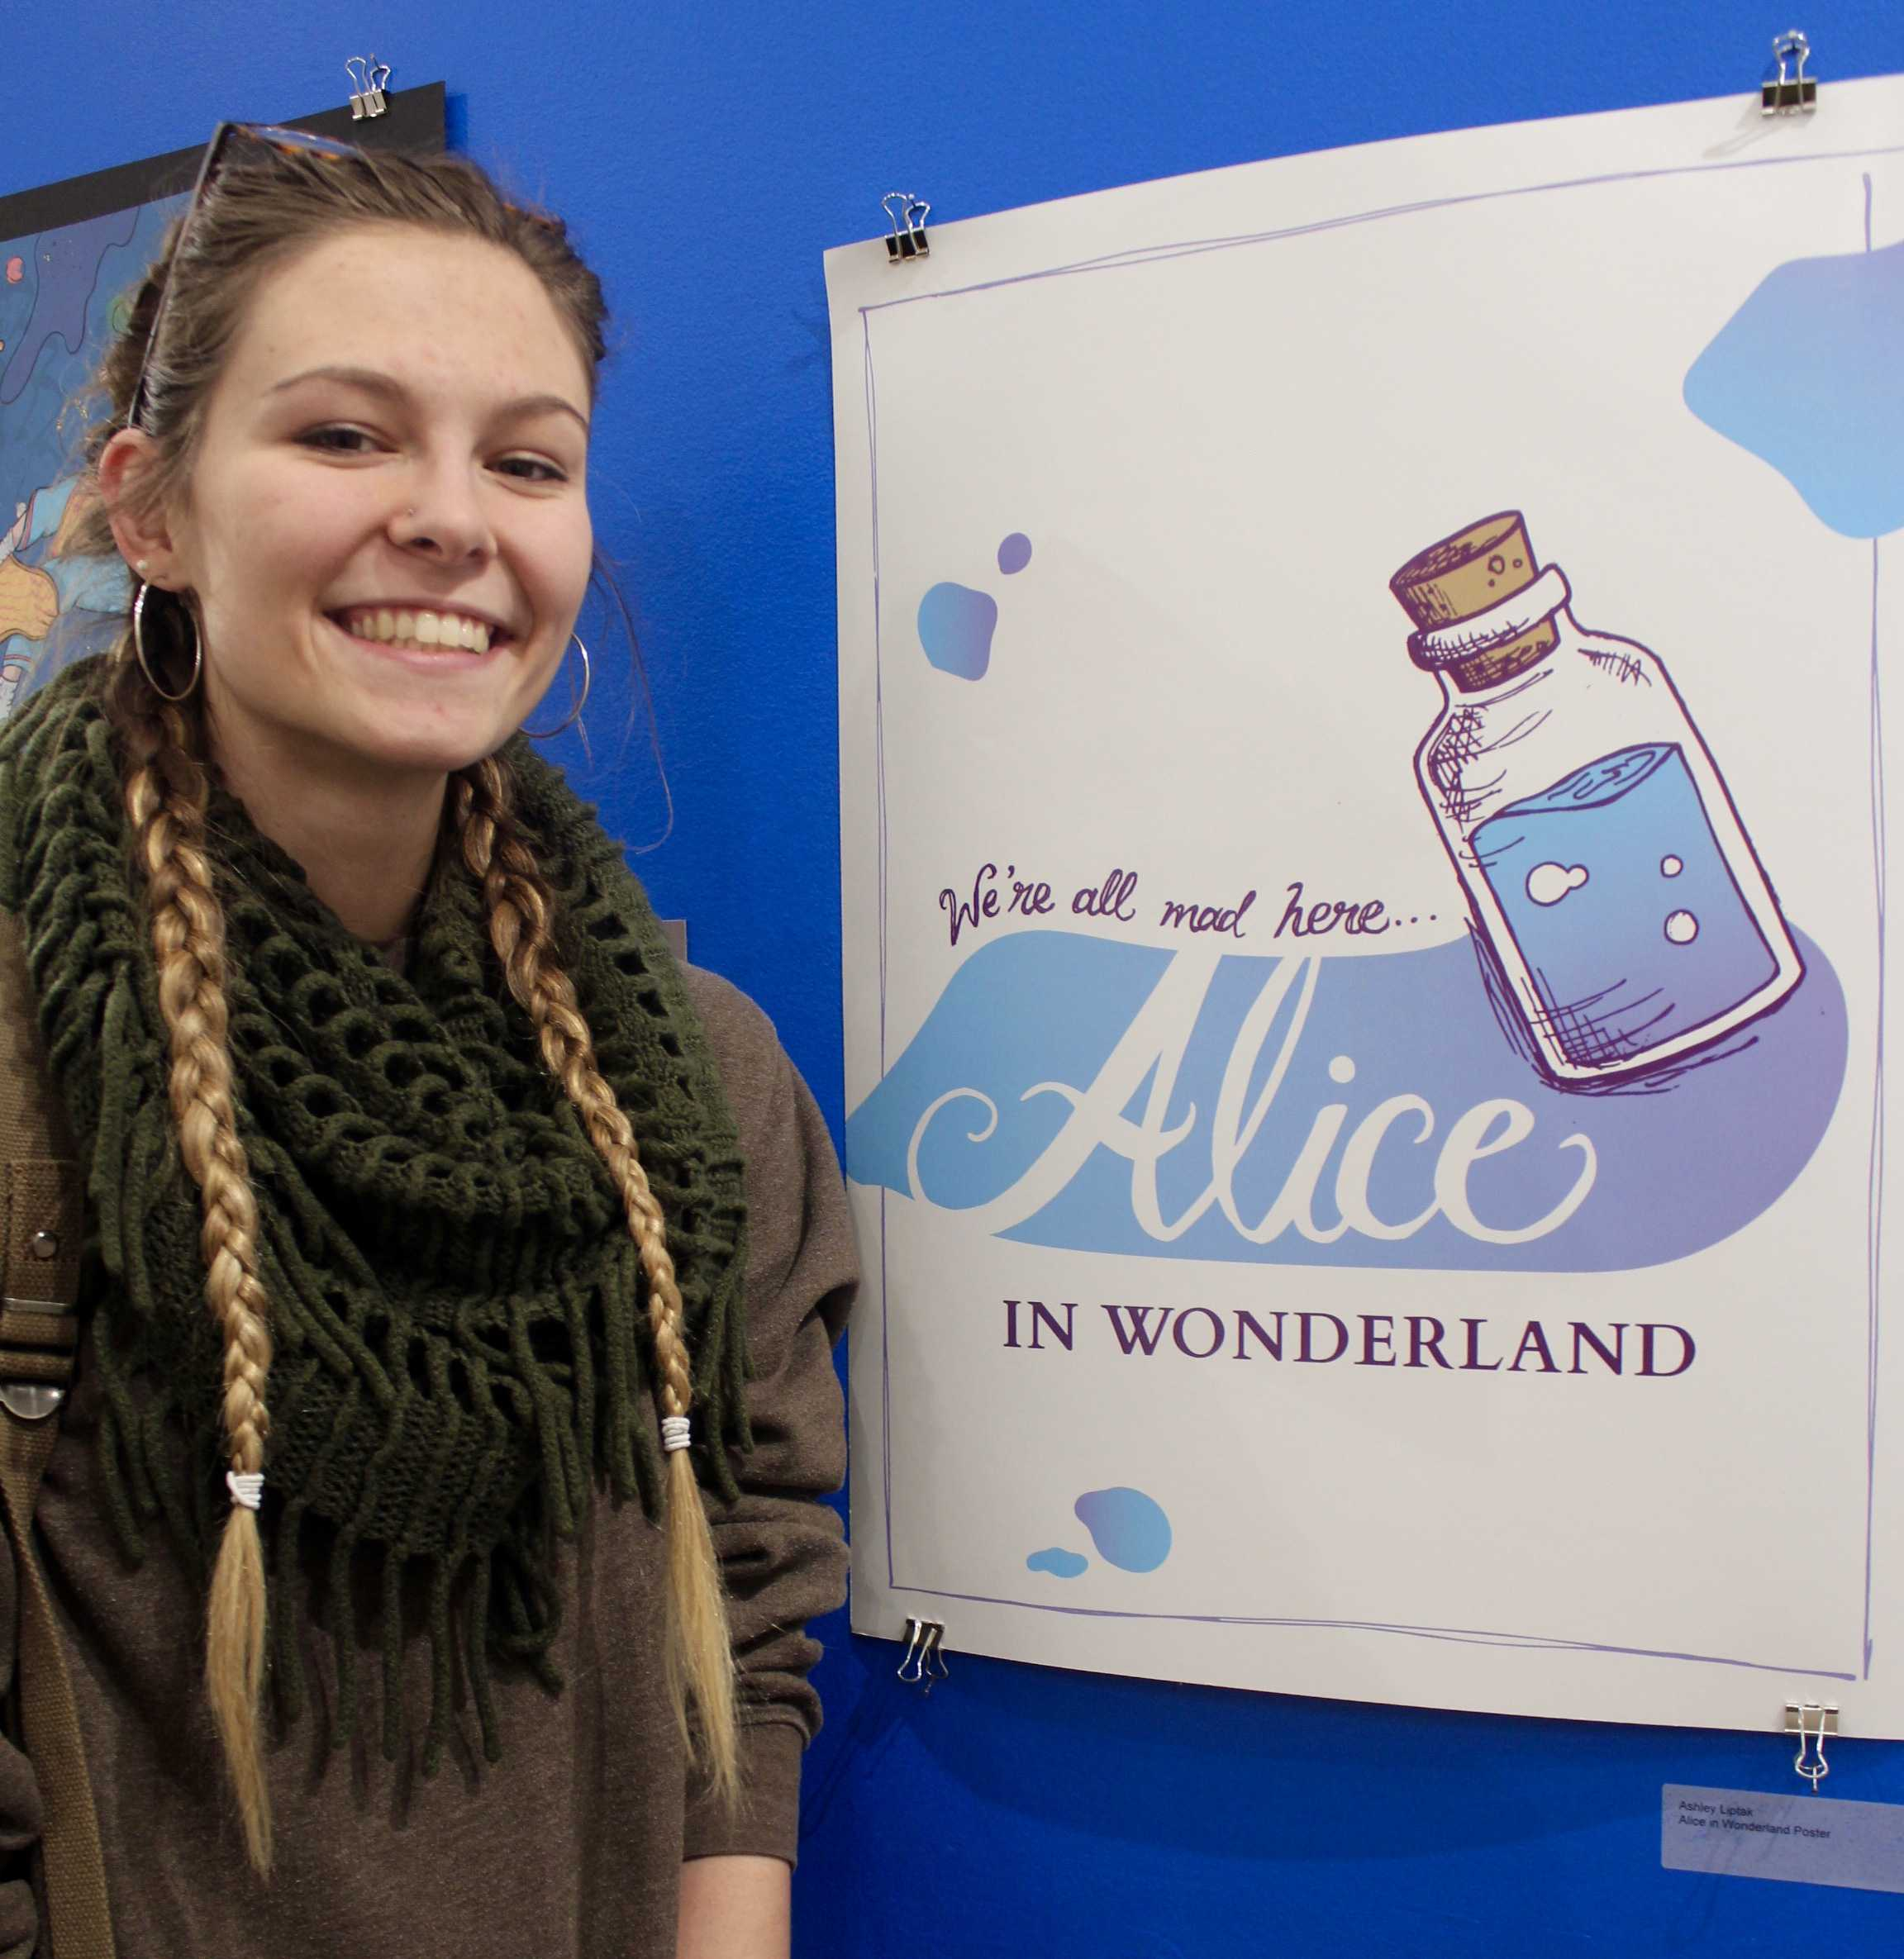 """Ashley Liptak presents her """"Alice in Wonderland Poster."""" Ashley was excited to show off her work to the university, as she takes great pride in what she designed. The inspiration came from the movie itself as she wanted to show the design in a different, artistic way. Photo by Ashley Miller."""